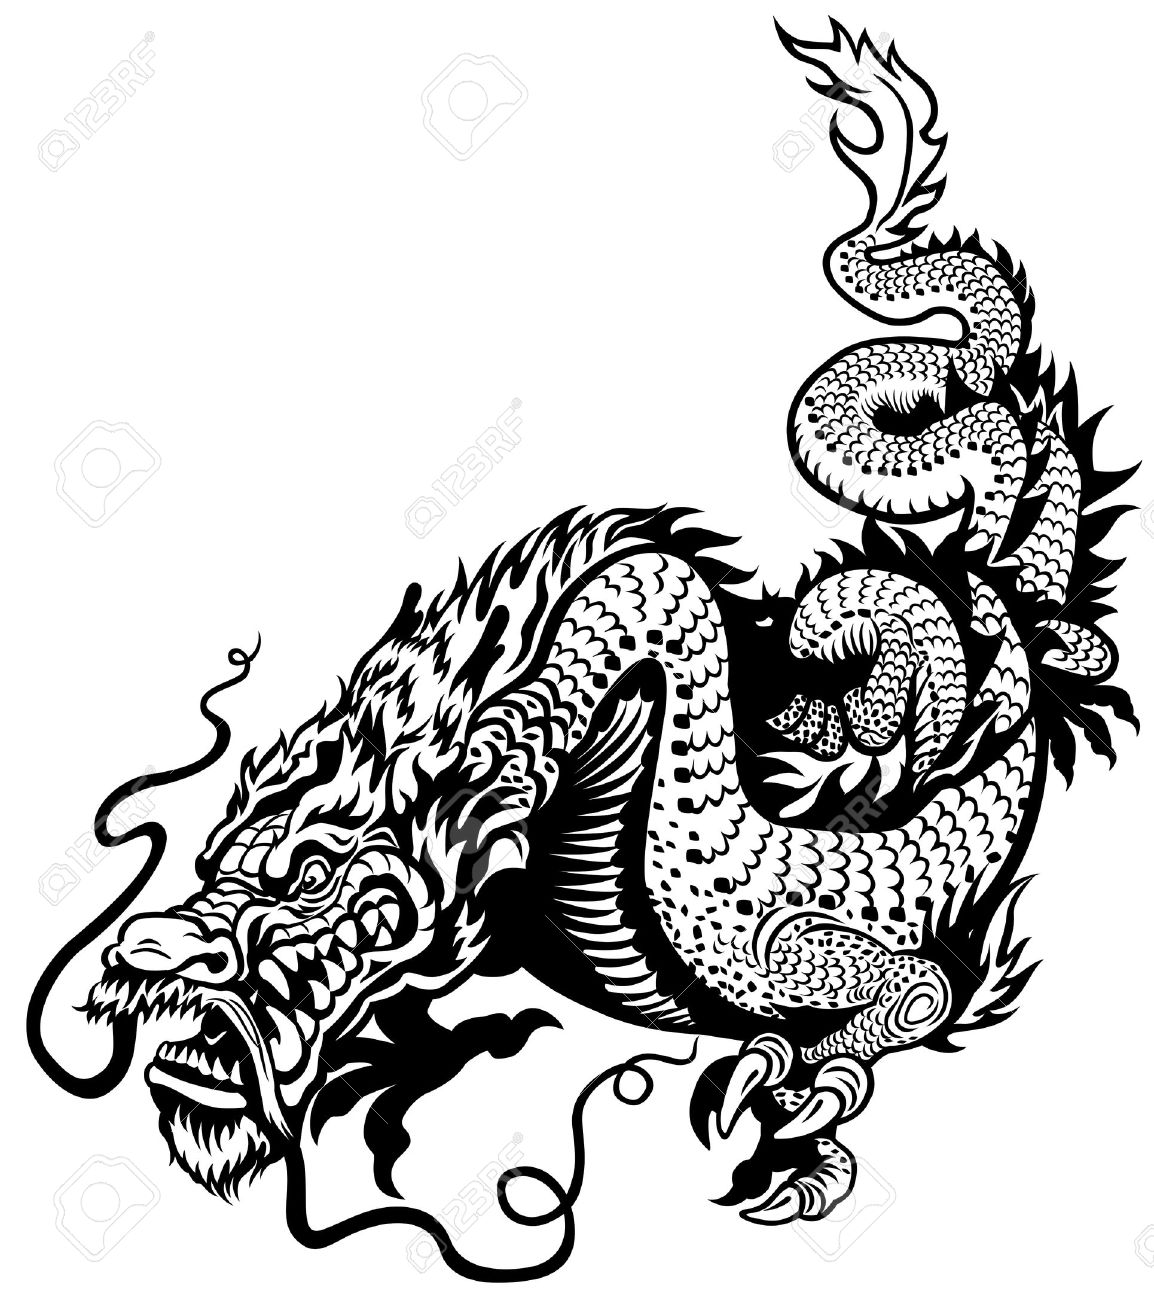 1154x1300 Dragon Black And White Illustration Royalty Free Cliparts, Vectors